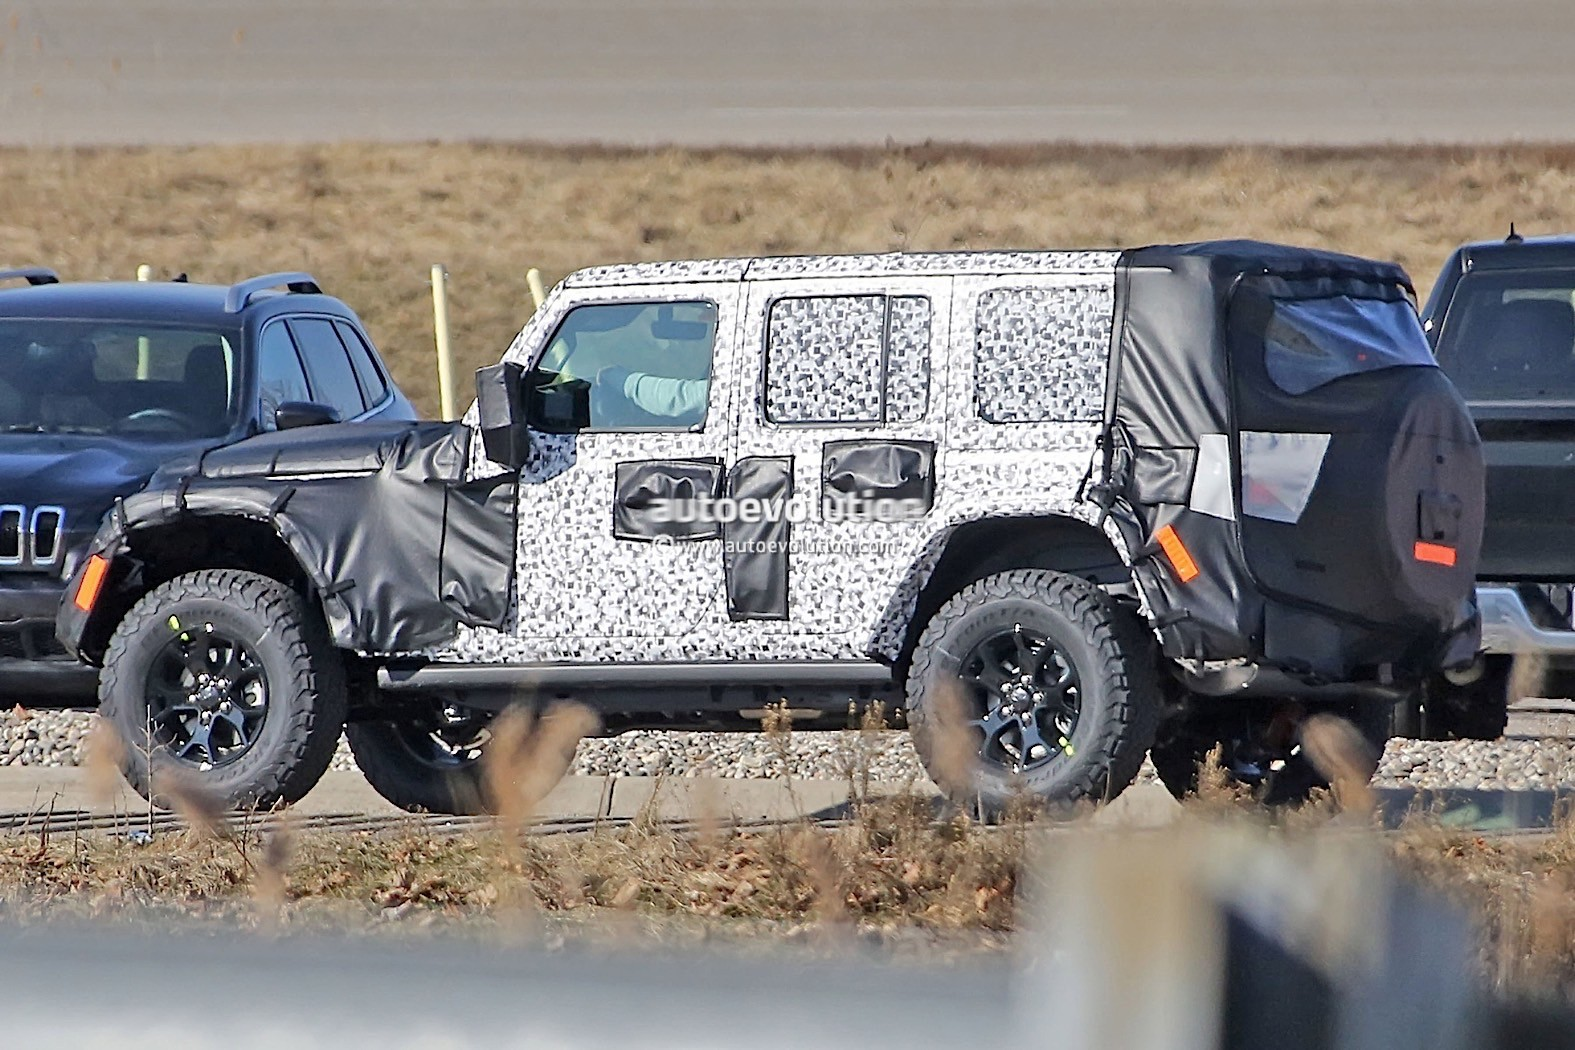 diesel powered jeep wrangler jl is go for 2019my two. Black Bedroom Furniture Sets. Home Design Ideas